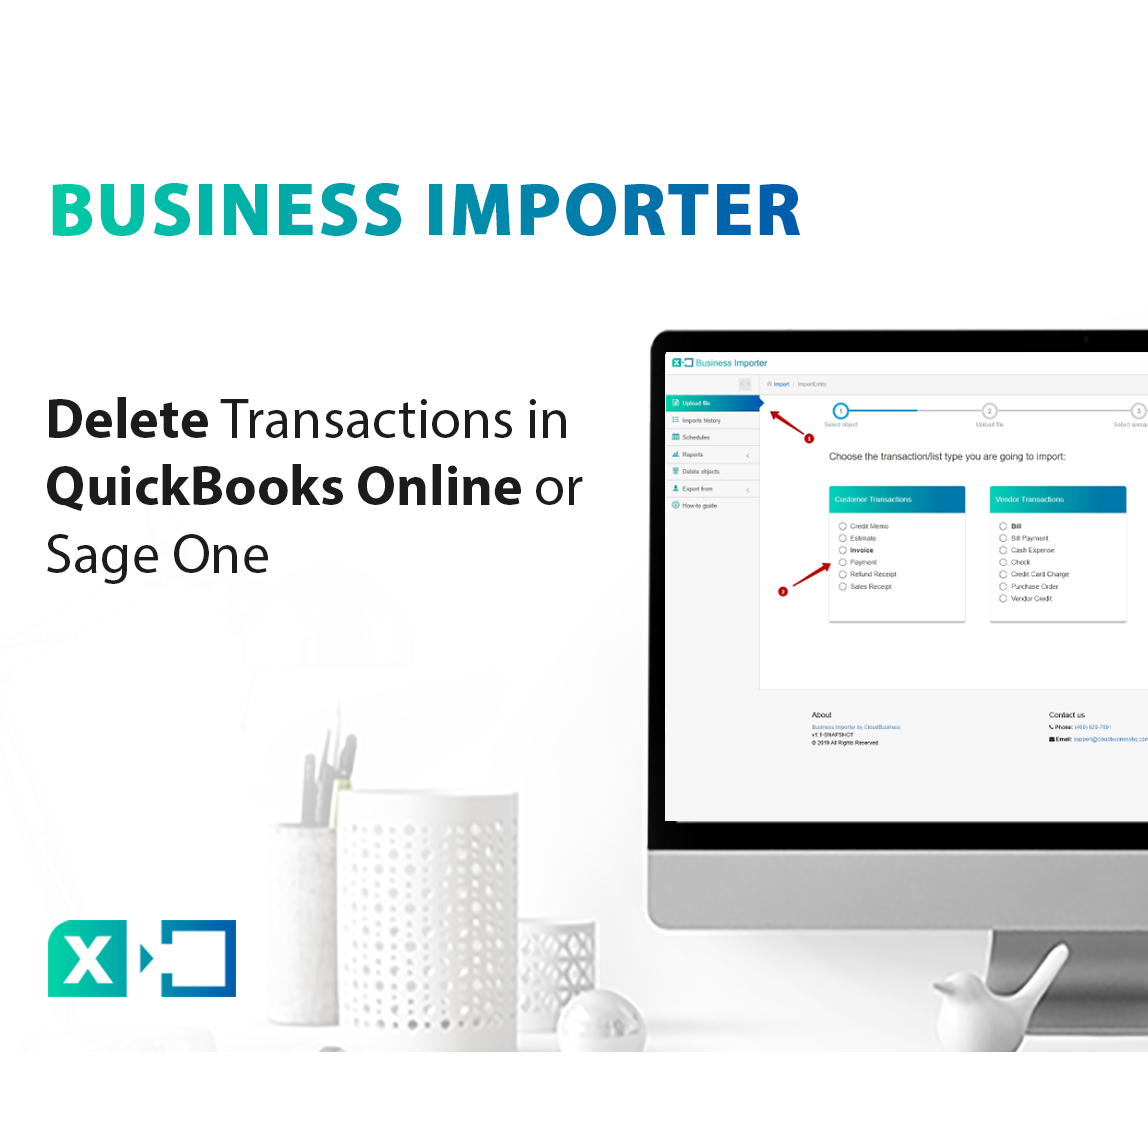 How to delete transactions in QuickBooks Online or Sage One